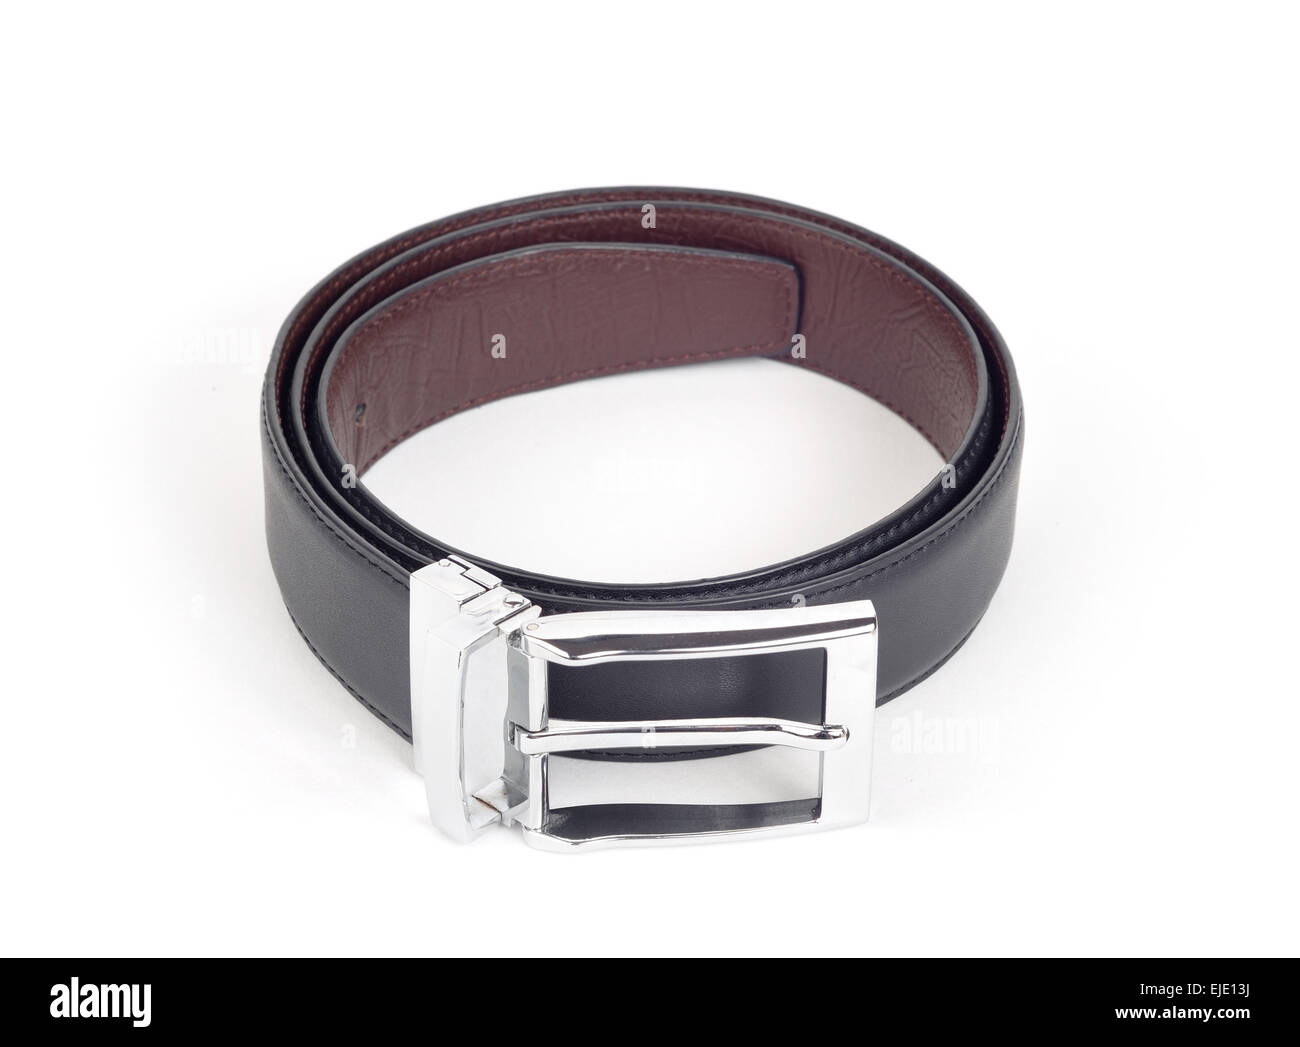 bilateral black and brown leather belt on white background - Stock Image